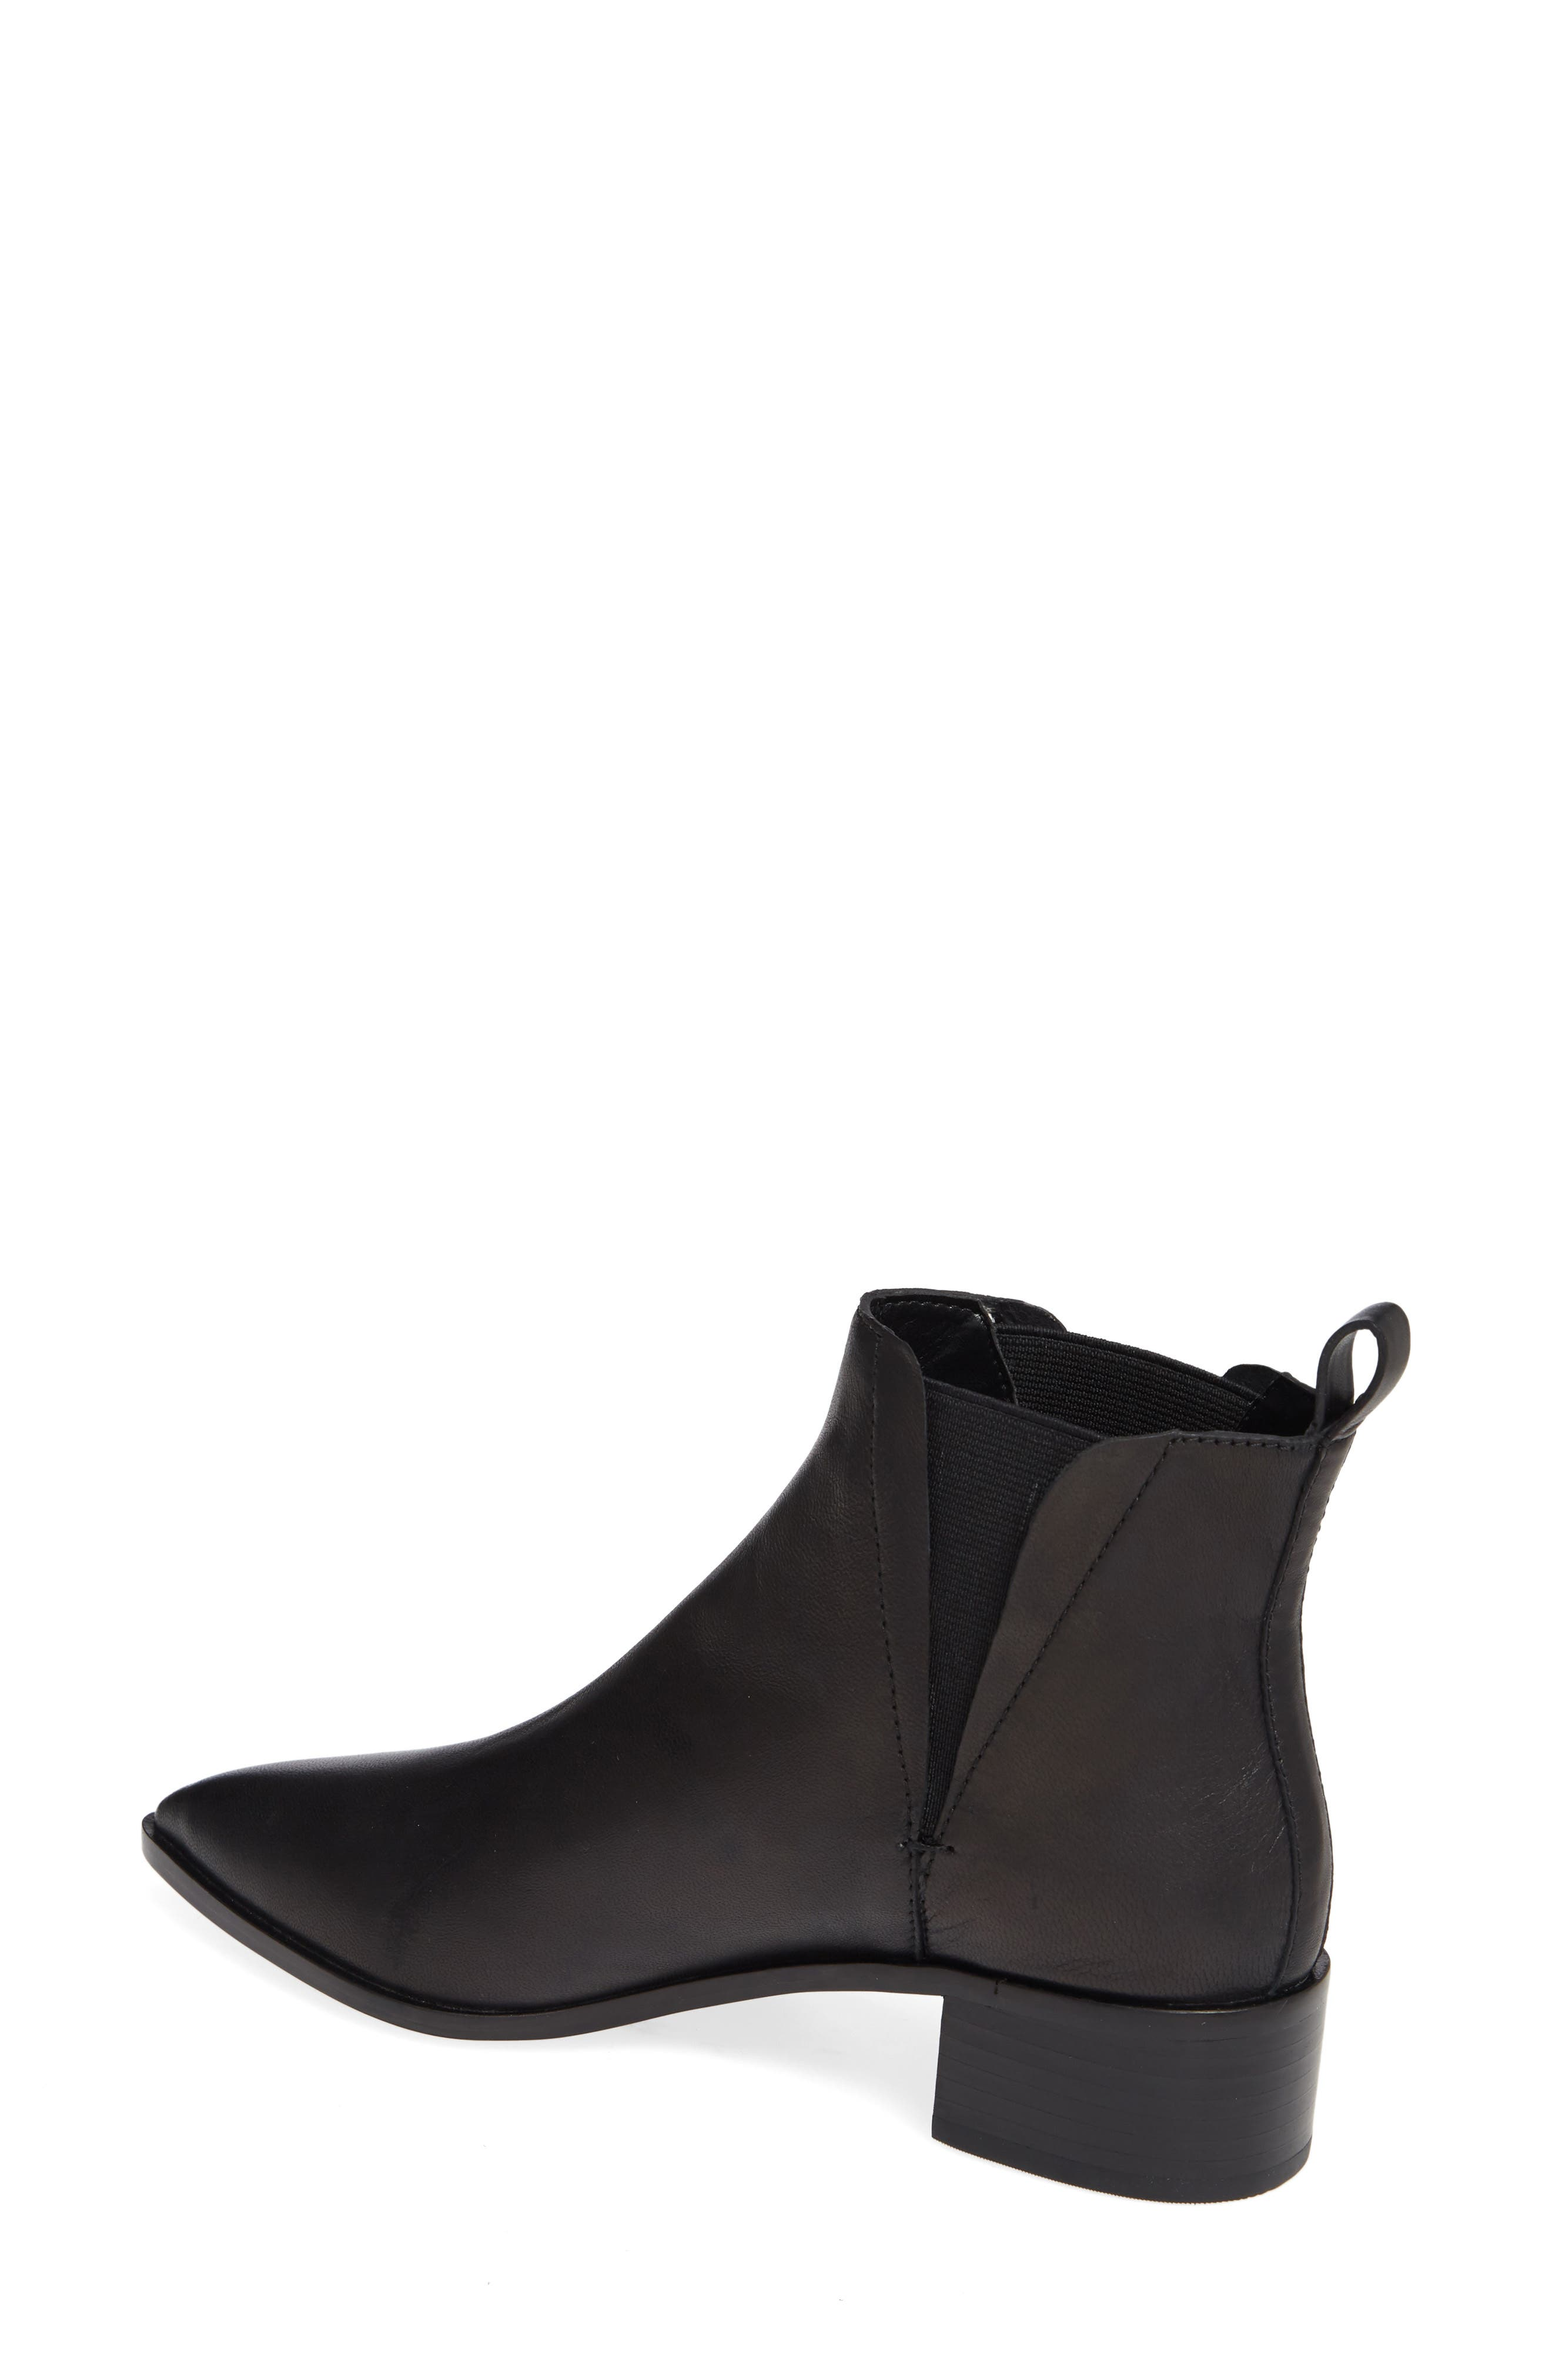 Taylor Bootie,                             Alternate thumbnail 2, color,                             BLACK LEATHER